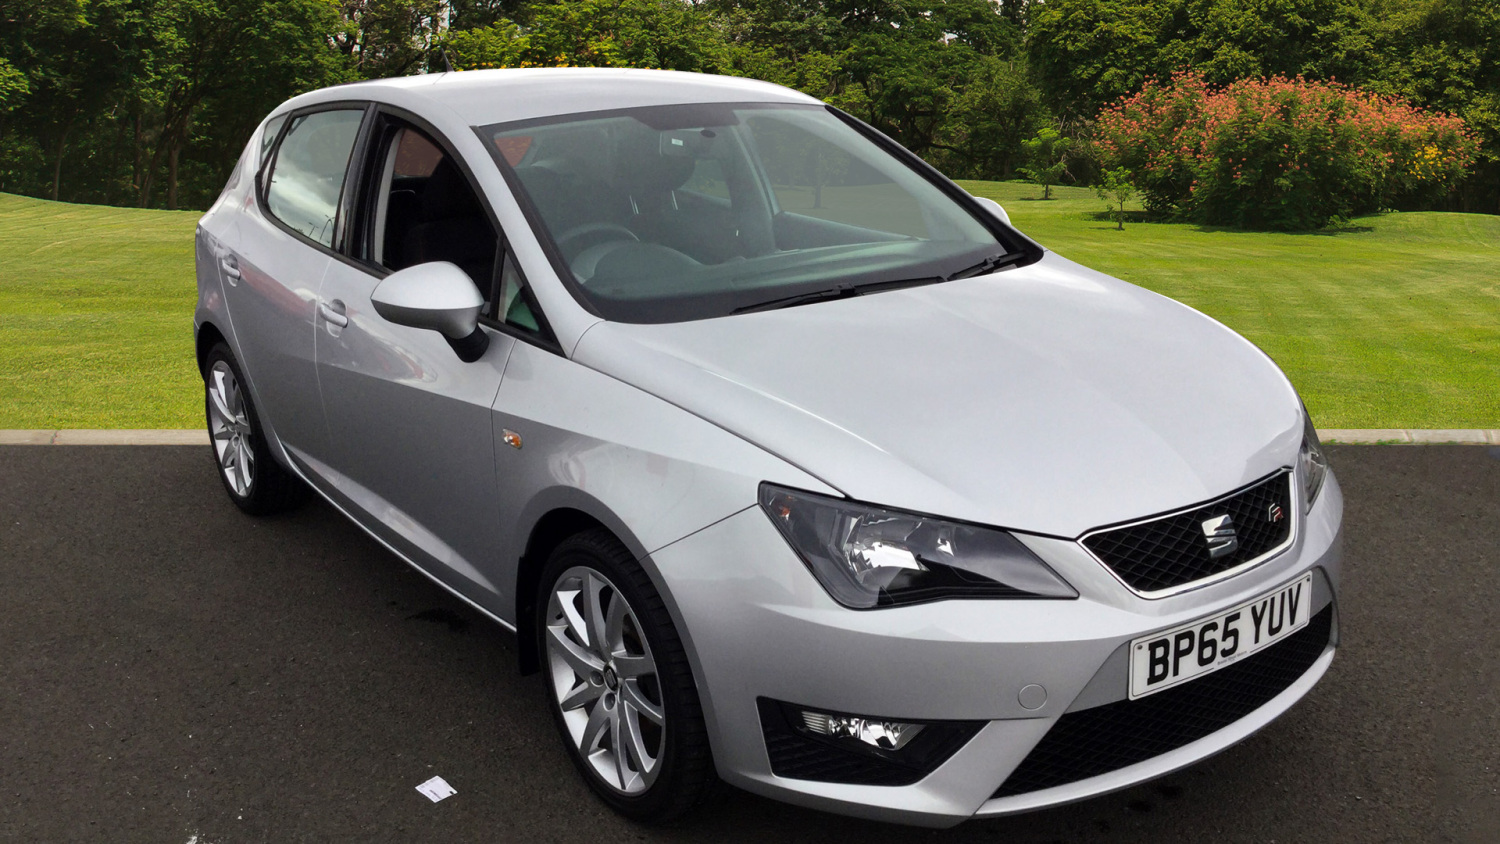 Seat Ibiza For Sale Birmingham Used Seat Ibiza 1 2 Tsi Fr 5dr Petrol Hatchback For Sale